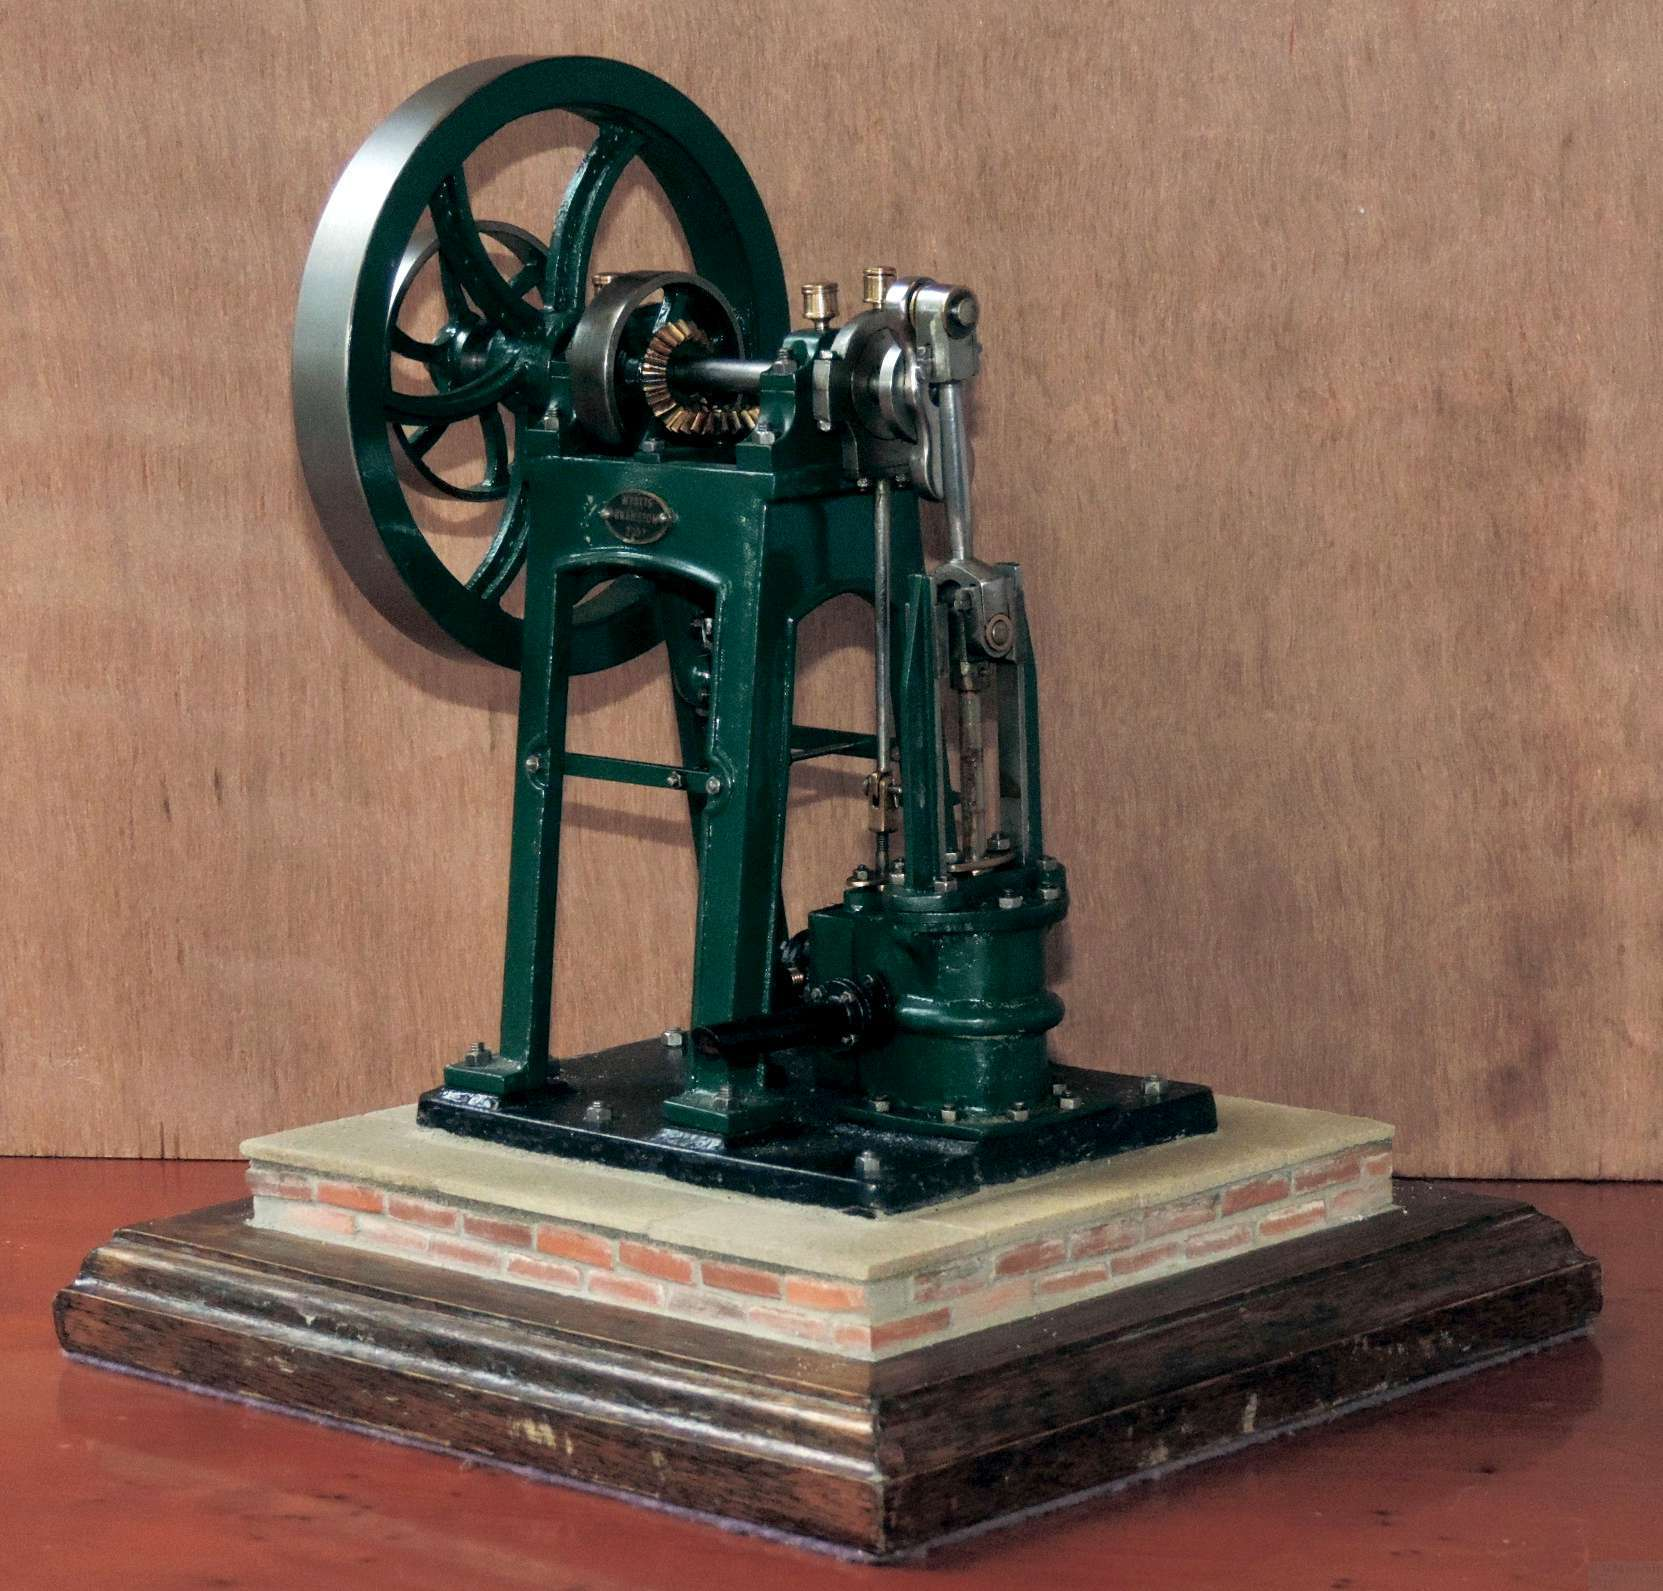 Norden Steam Engine